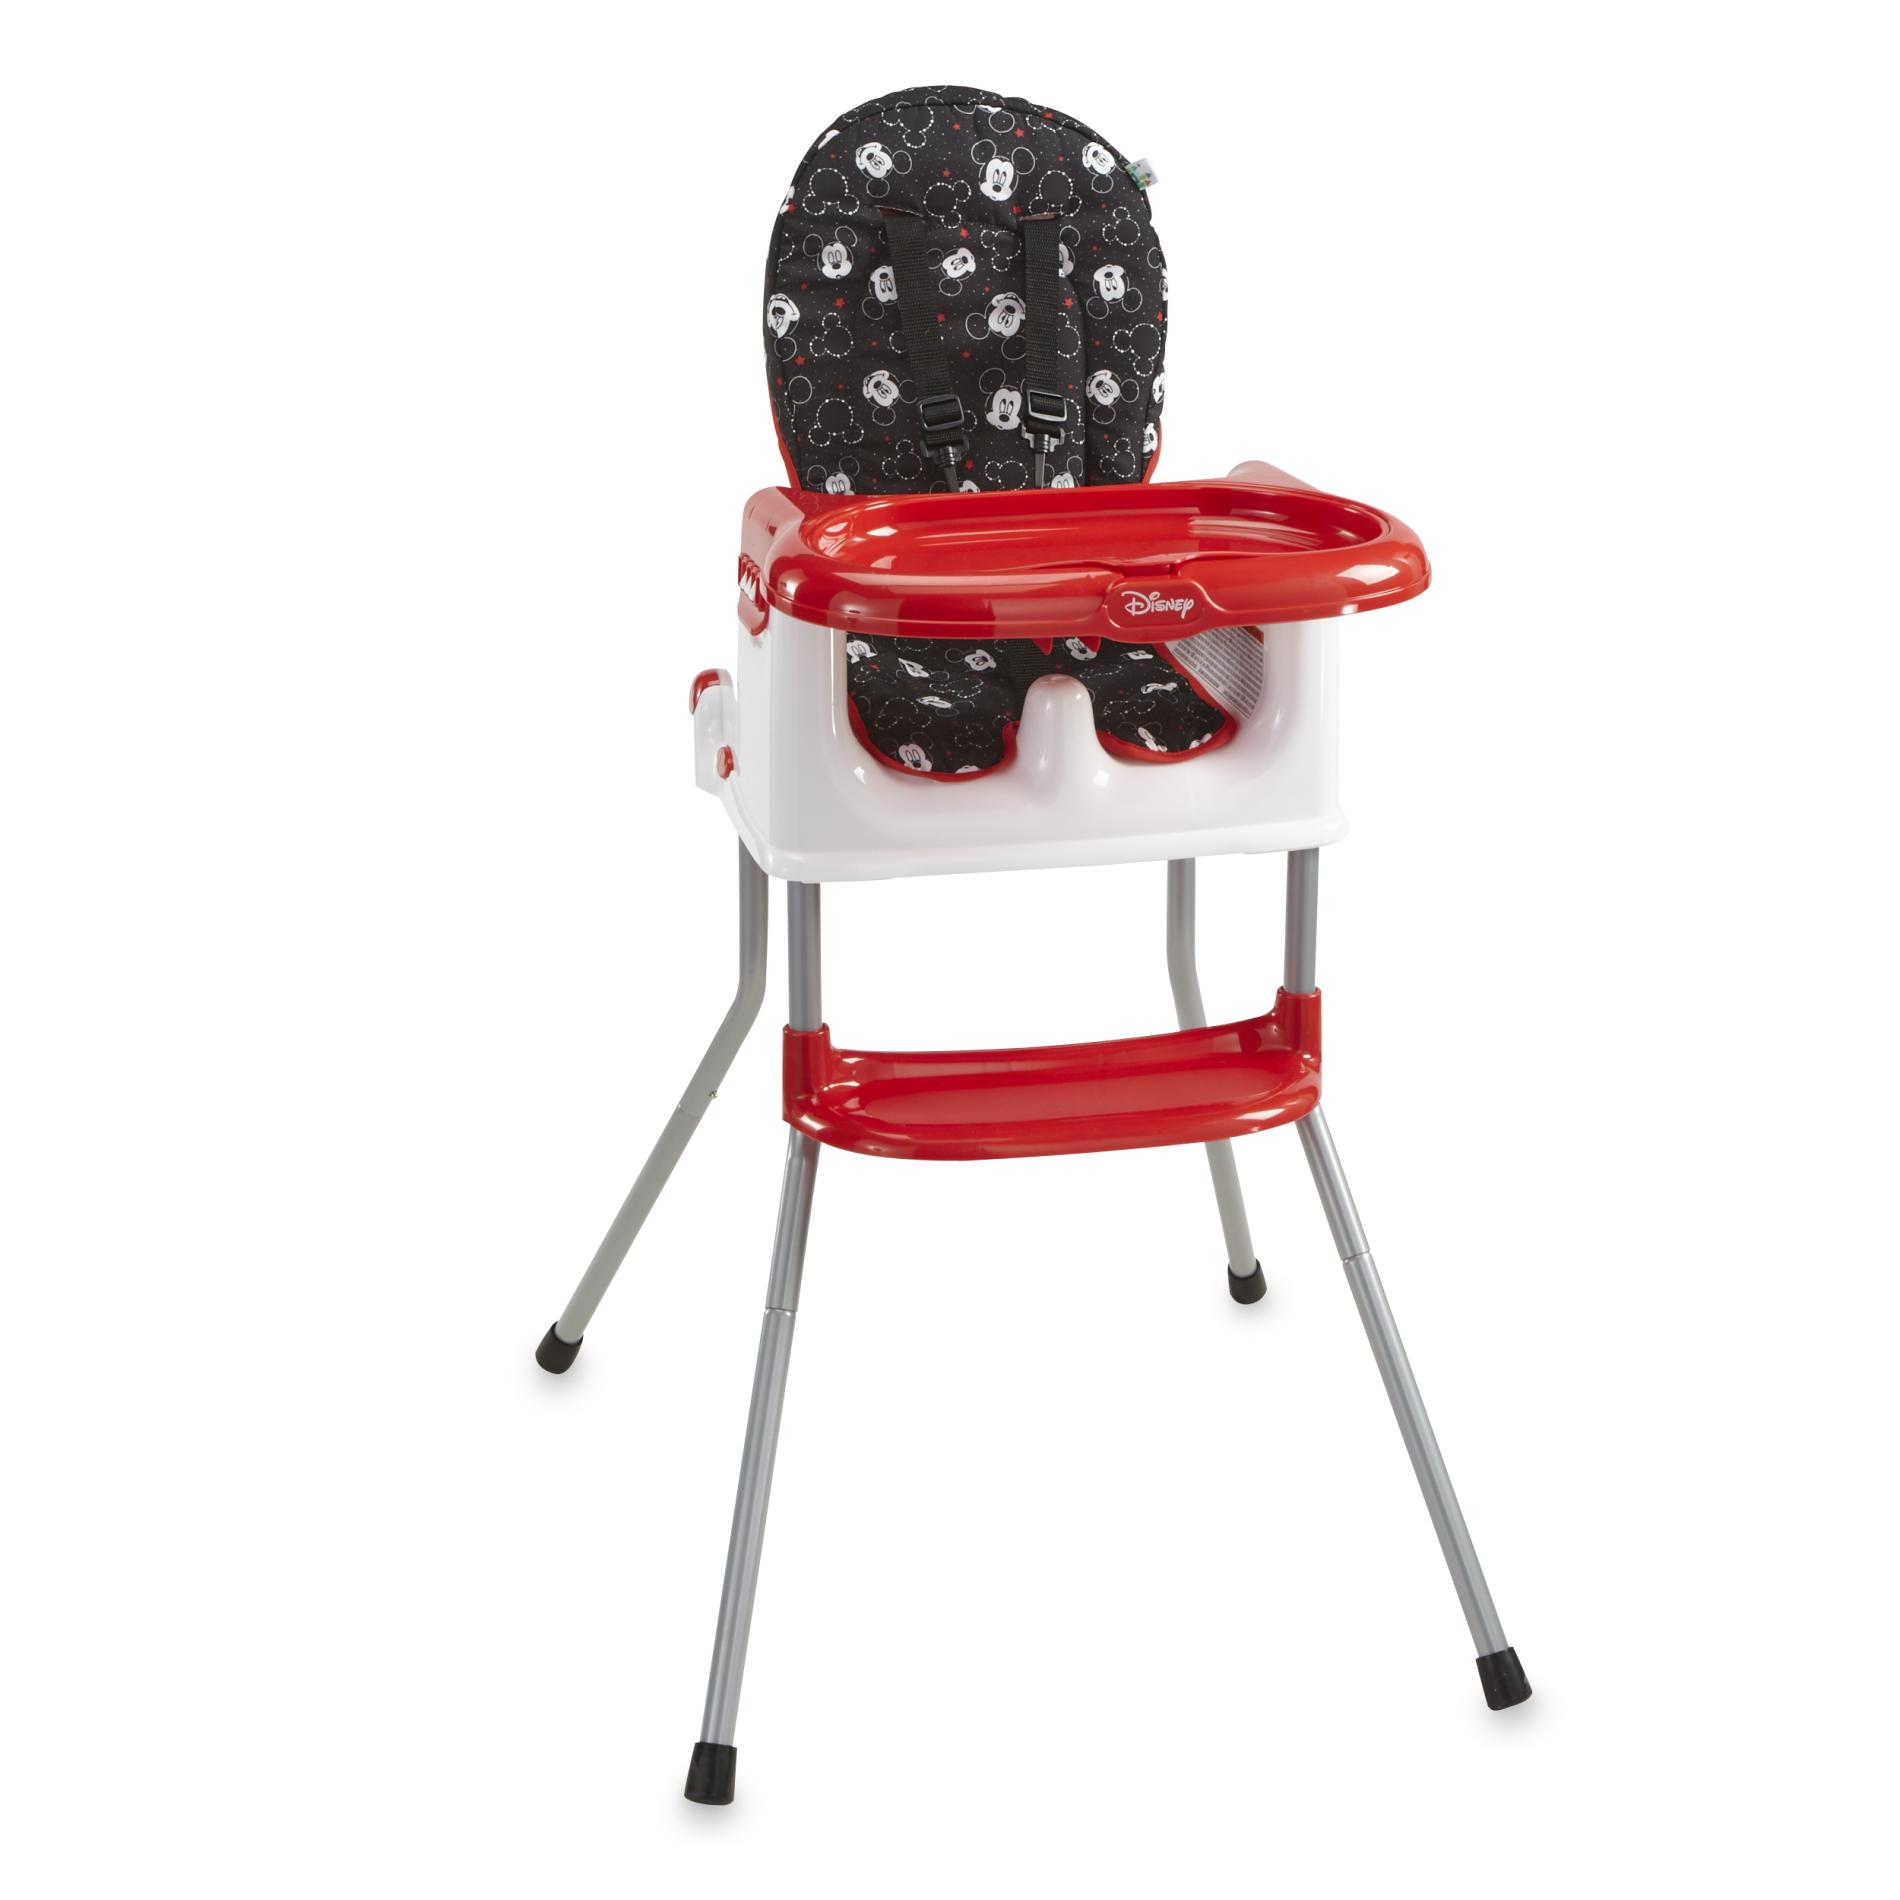 High Chair Kmart Disney Mickey Mouse 4 In 1 High Chair